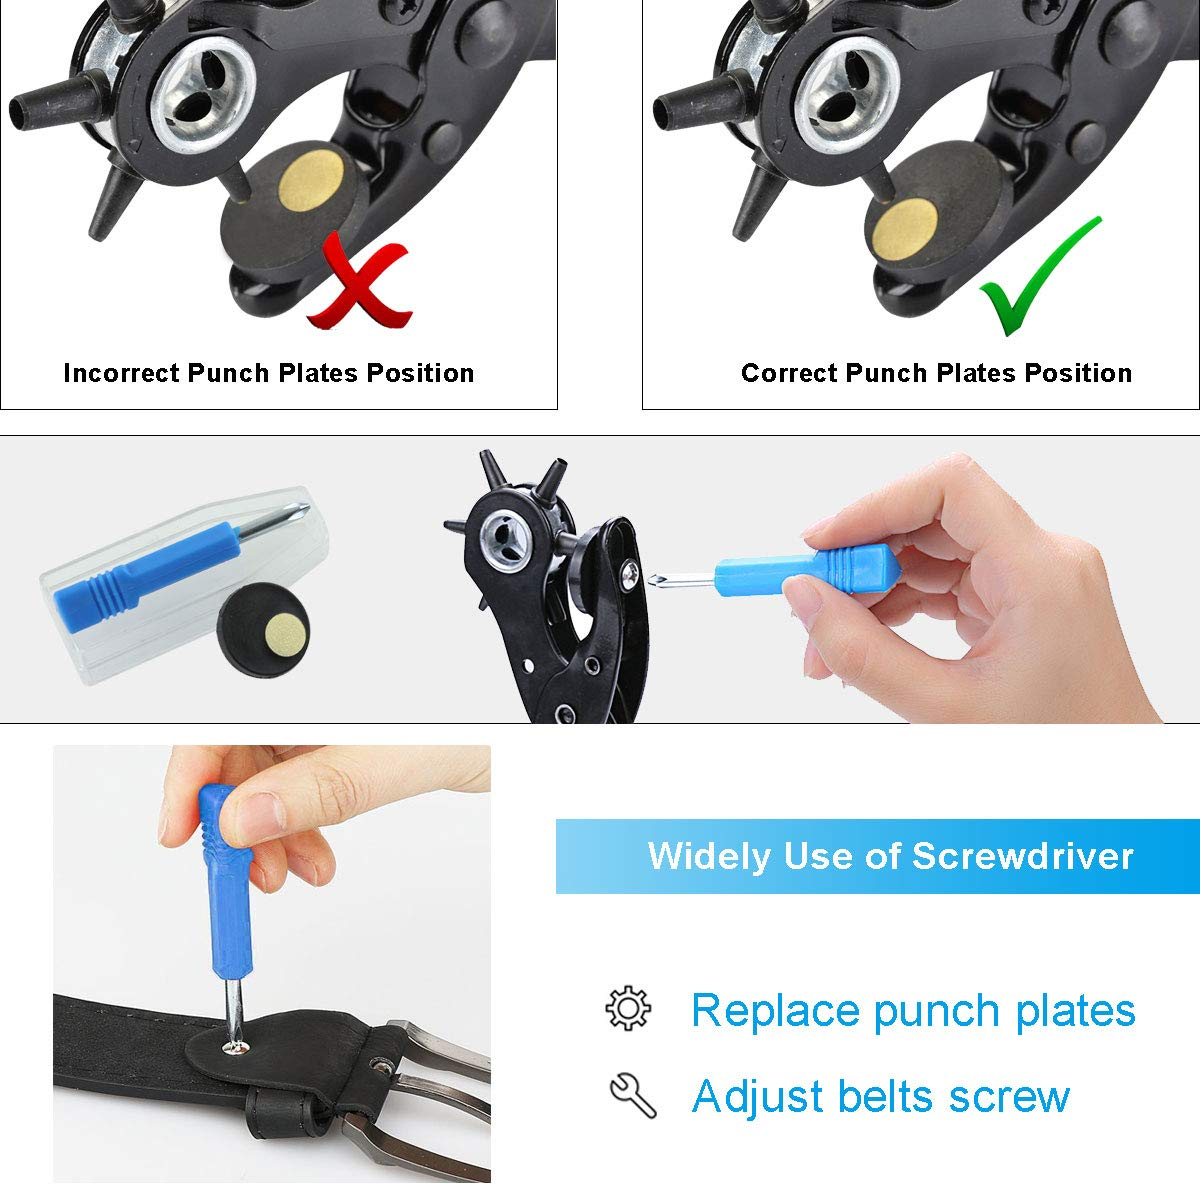 KCASA KA1 Heavy Duty Revolving Leather Belt Hole Punch Plier Tool with 2 Extra Punch Plates and Ruler Leather Craft Tool